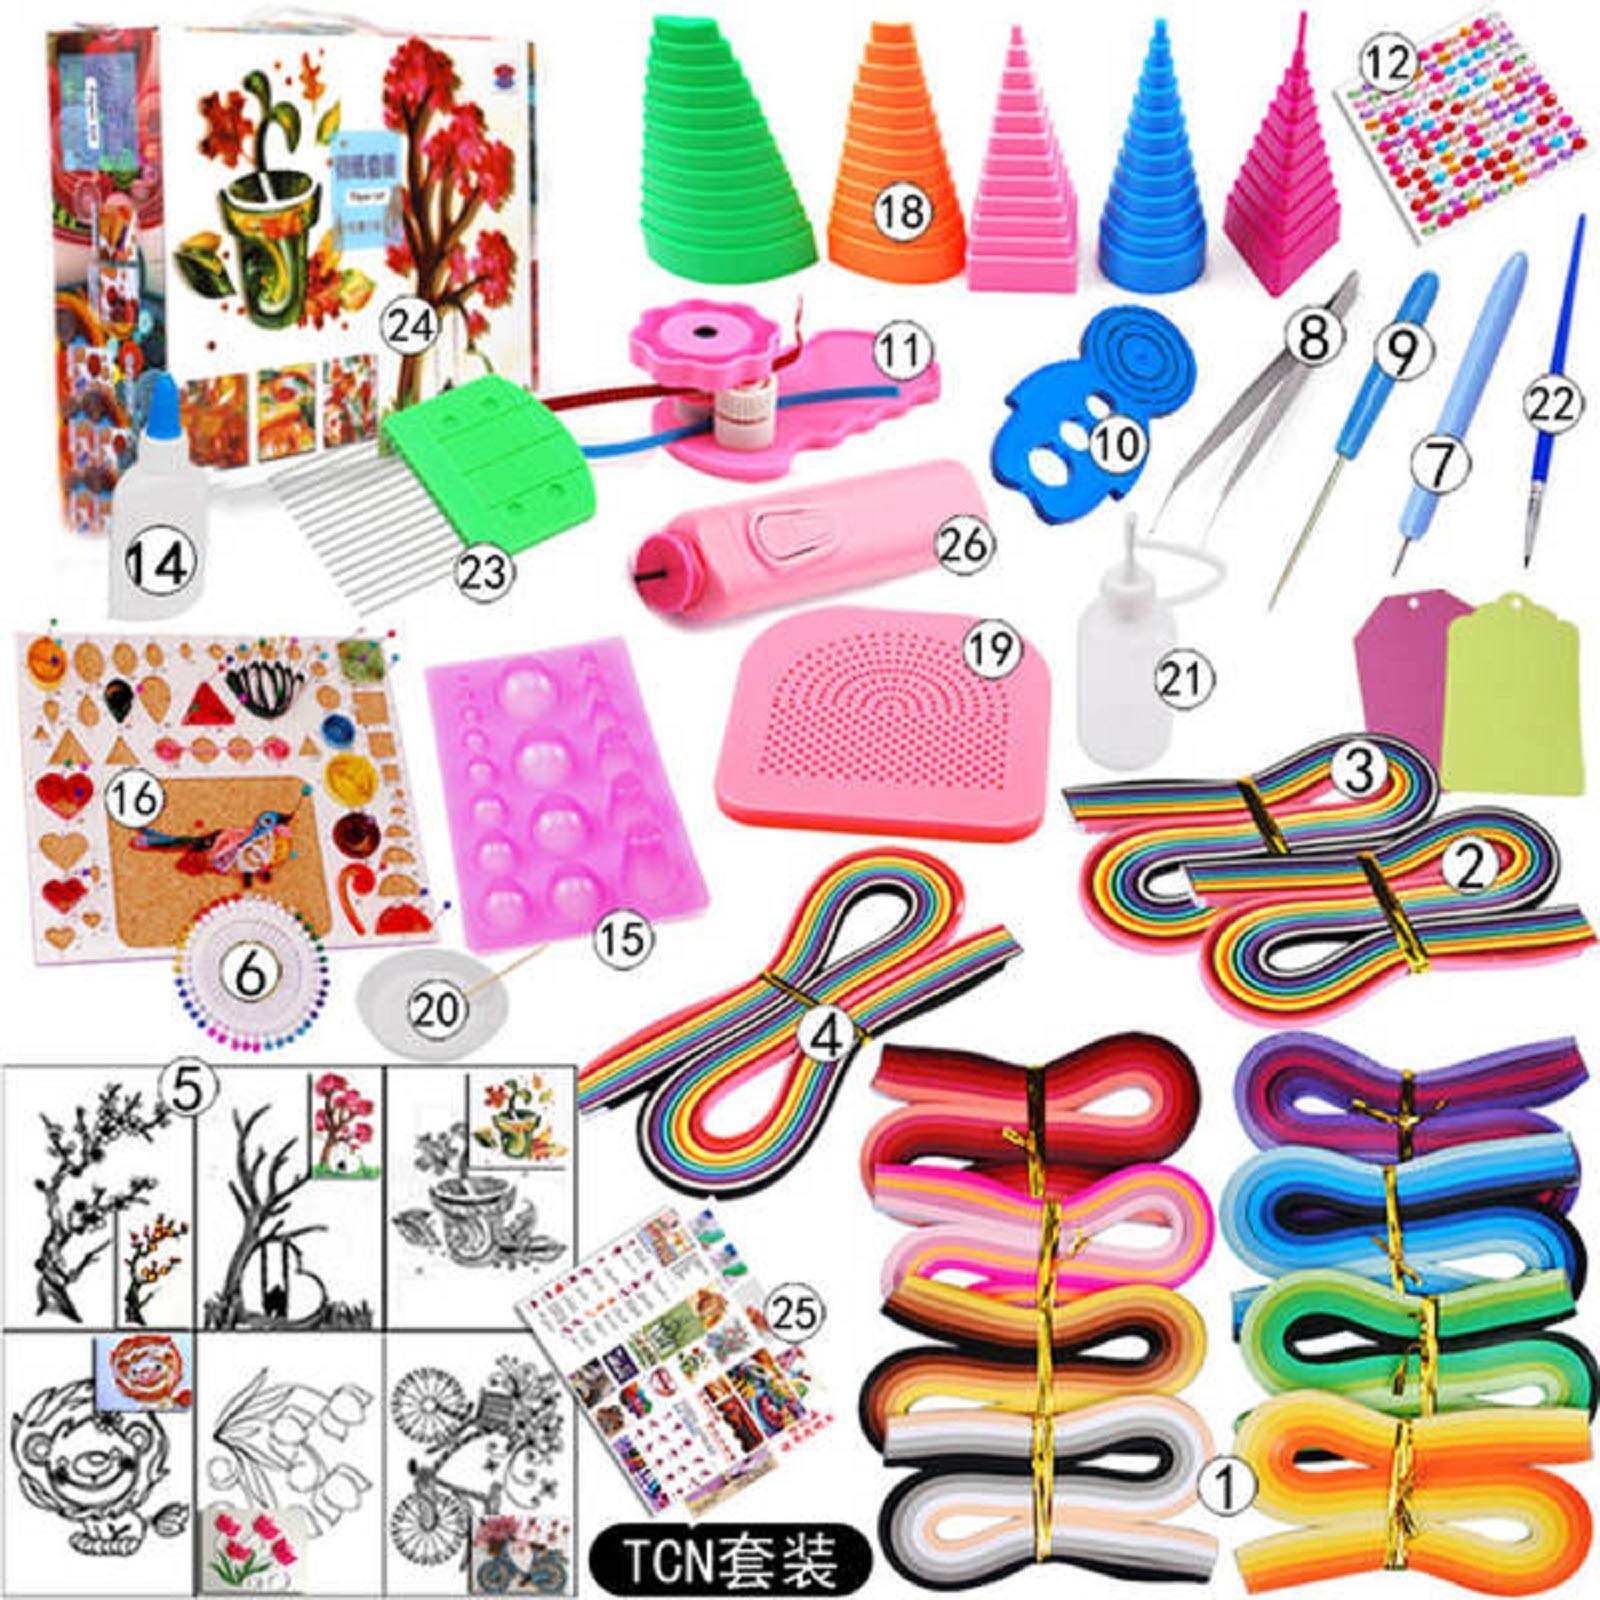 Tool Most Complete Quilling Paper Set Color Paper Craft Drawing Material Package Beginners Tool Board with Box Suitcase C83 (5) by Souvenir